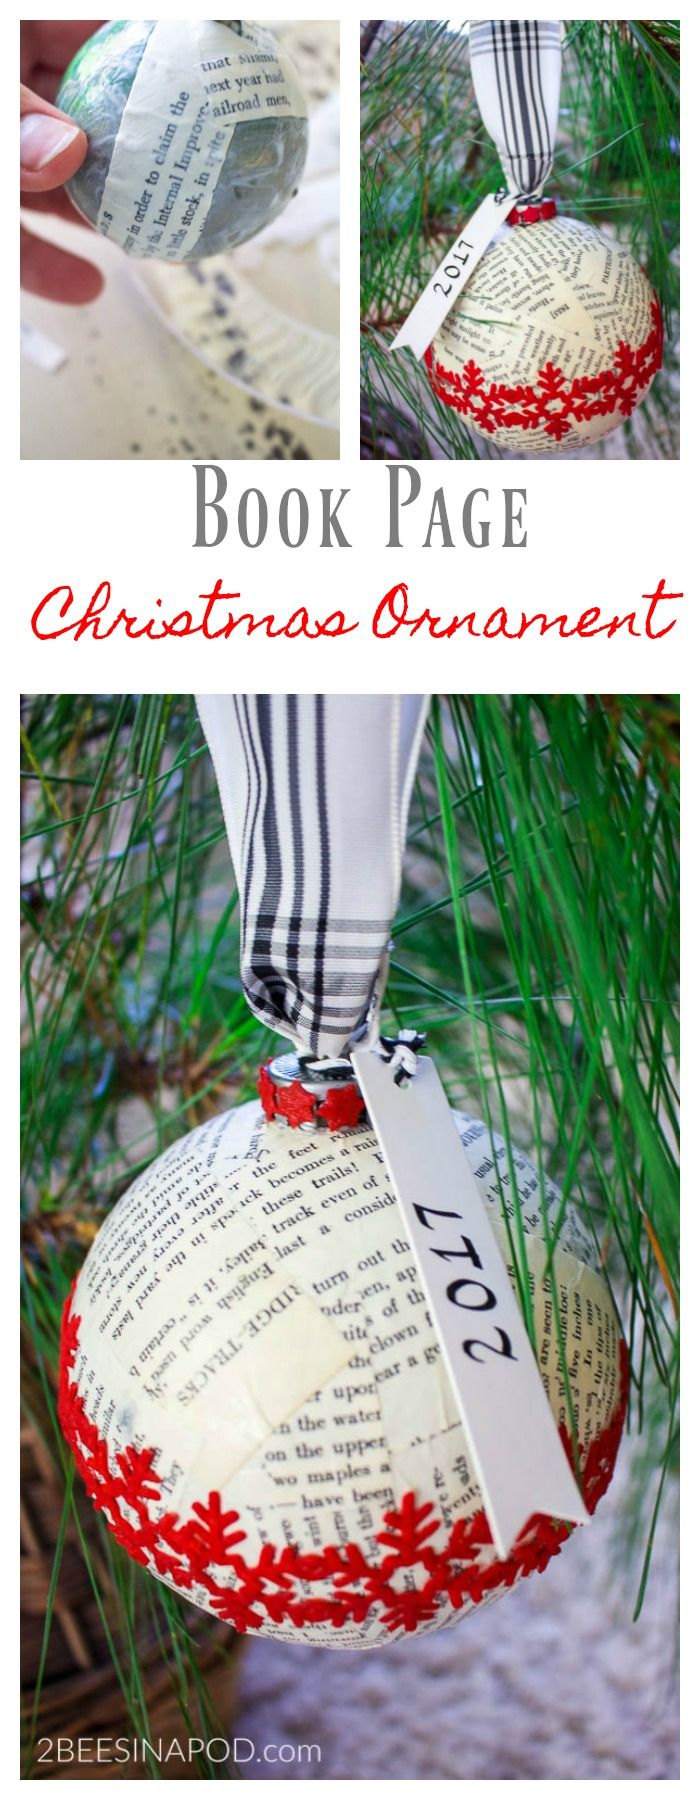 Book page christmas ornament and exchange christmas ornaments